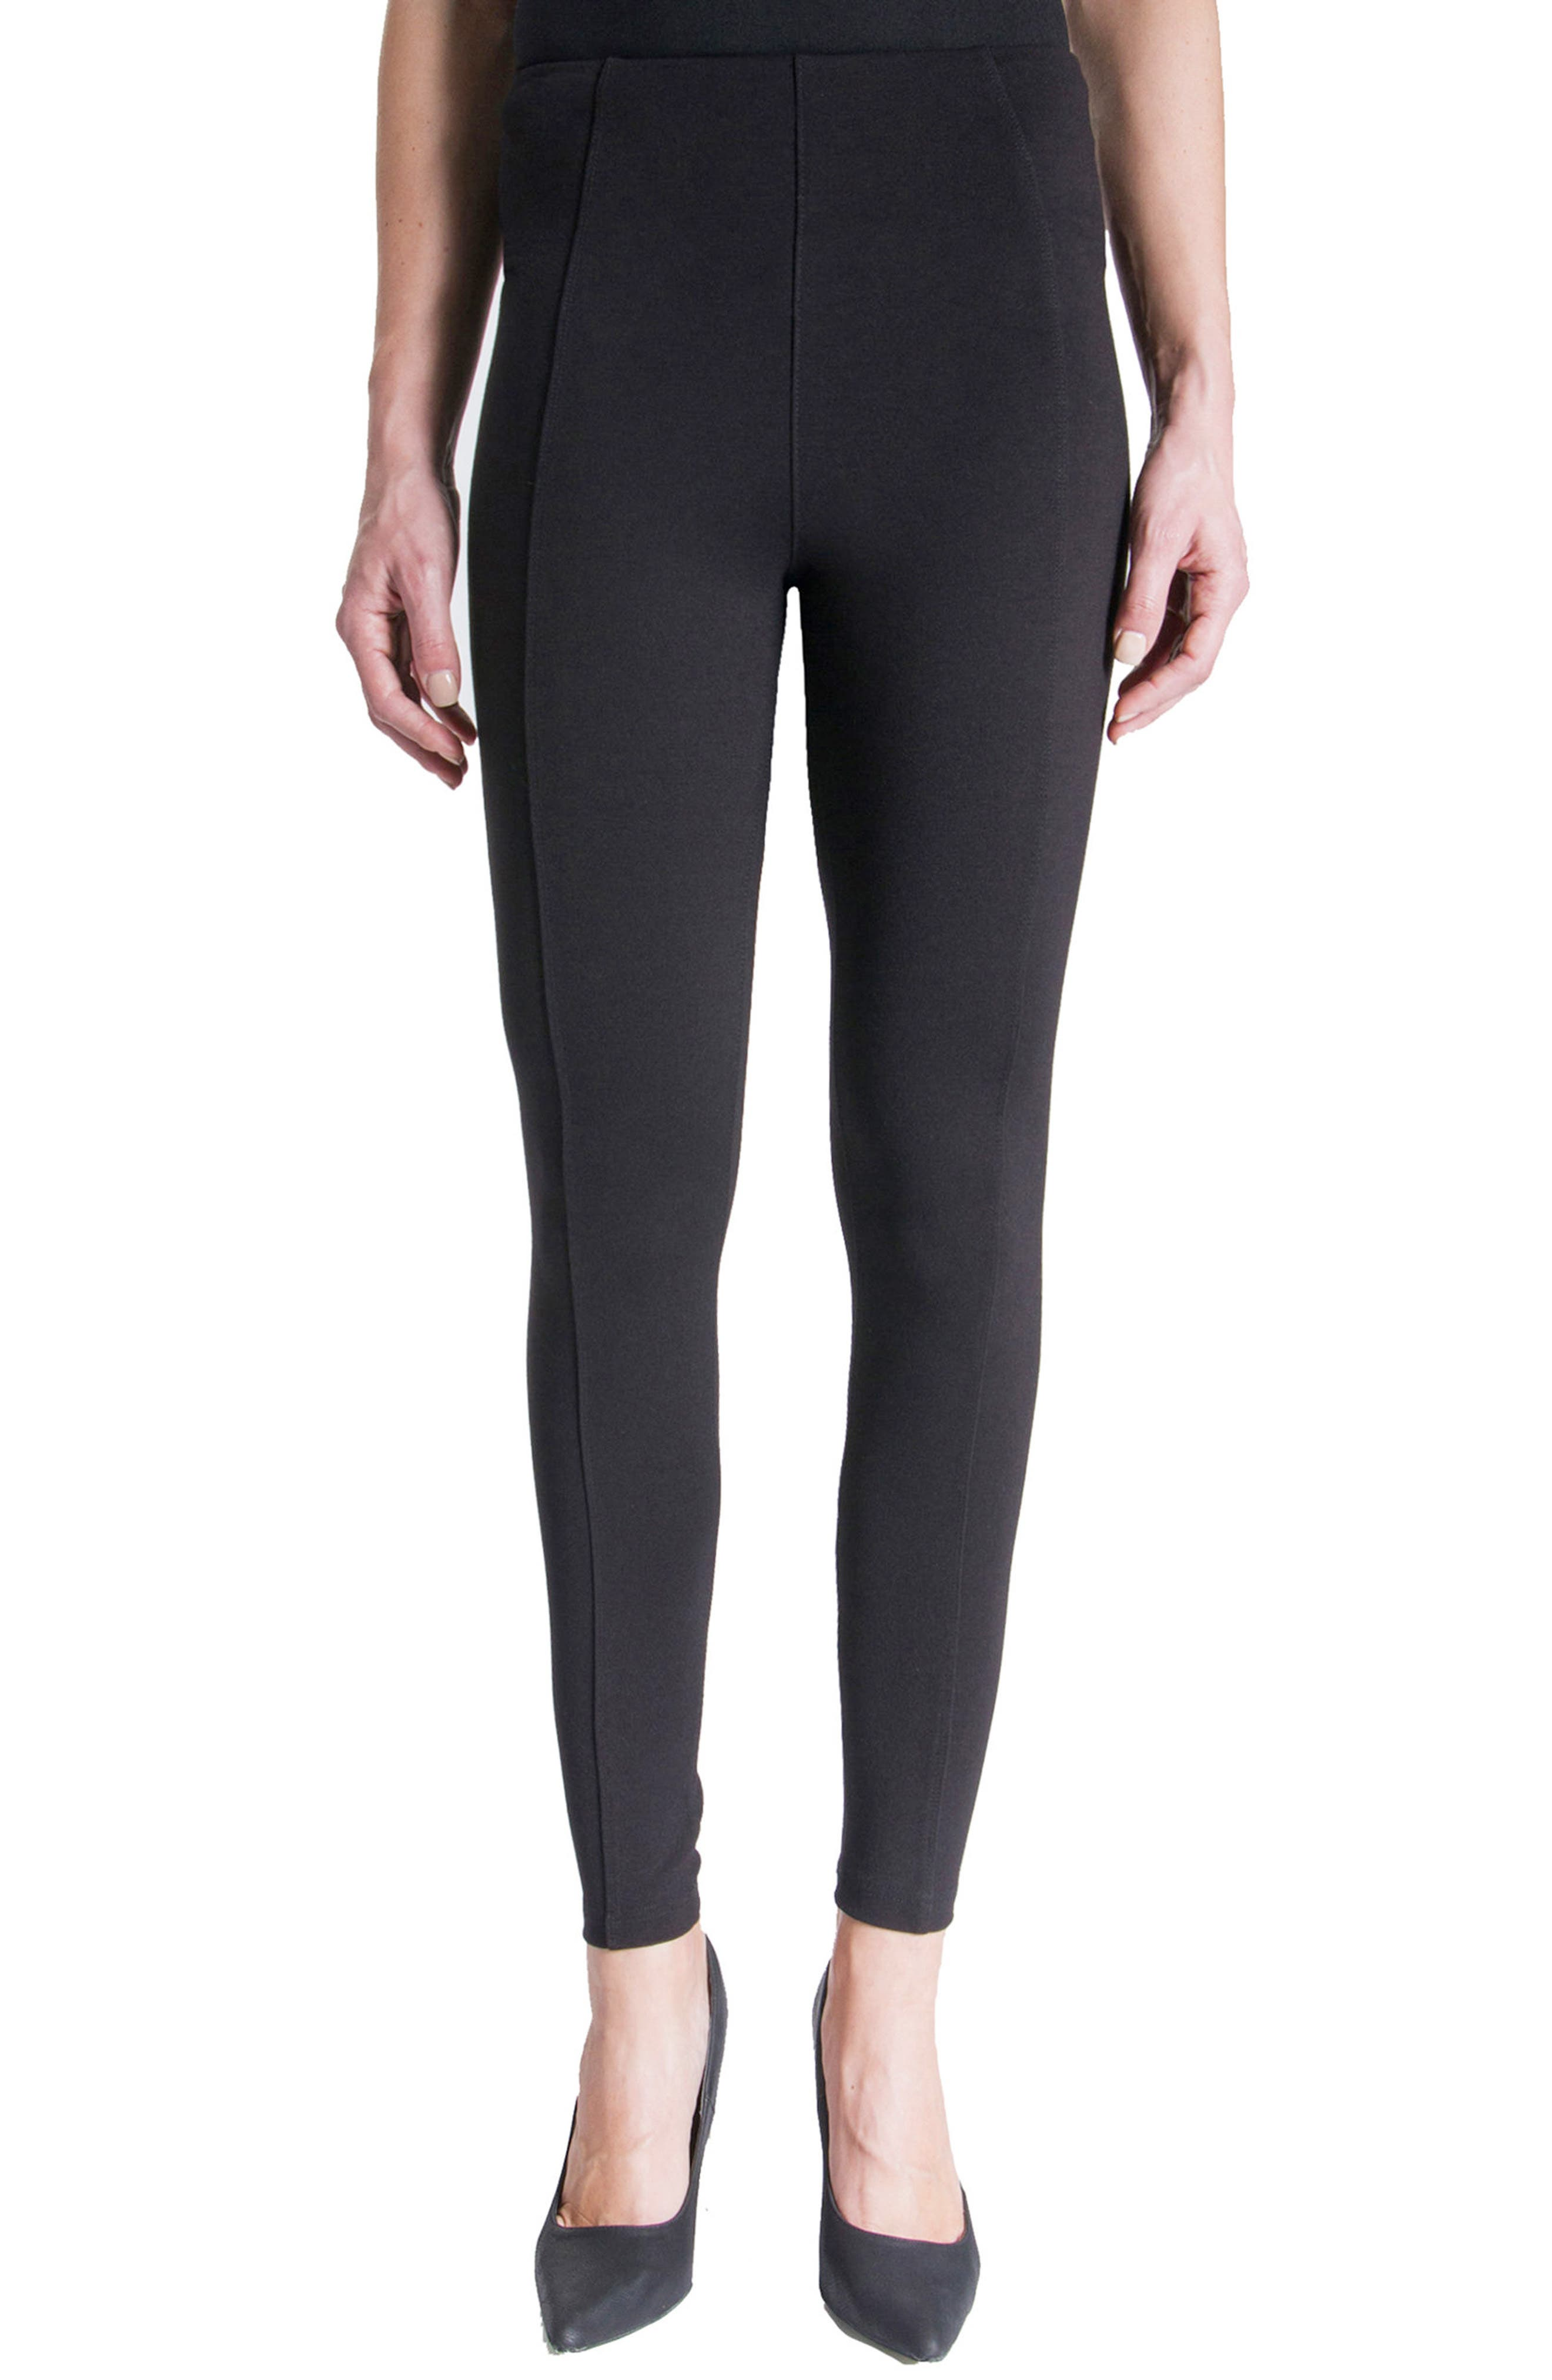 Reese Stretch Knit Leggings,                         Main,                         color, Black